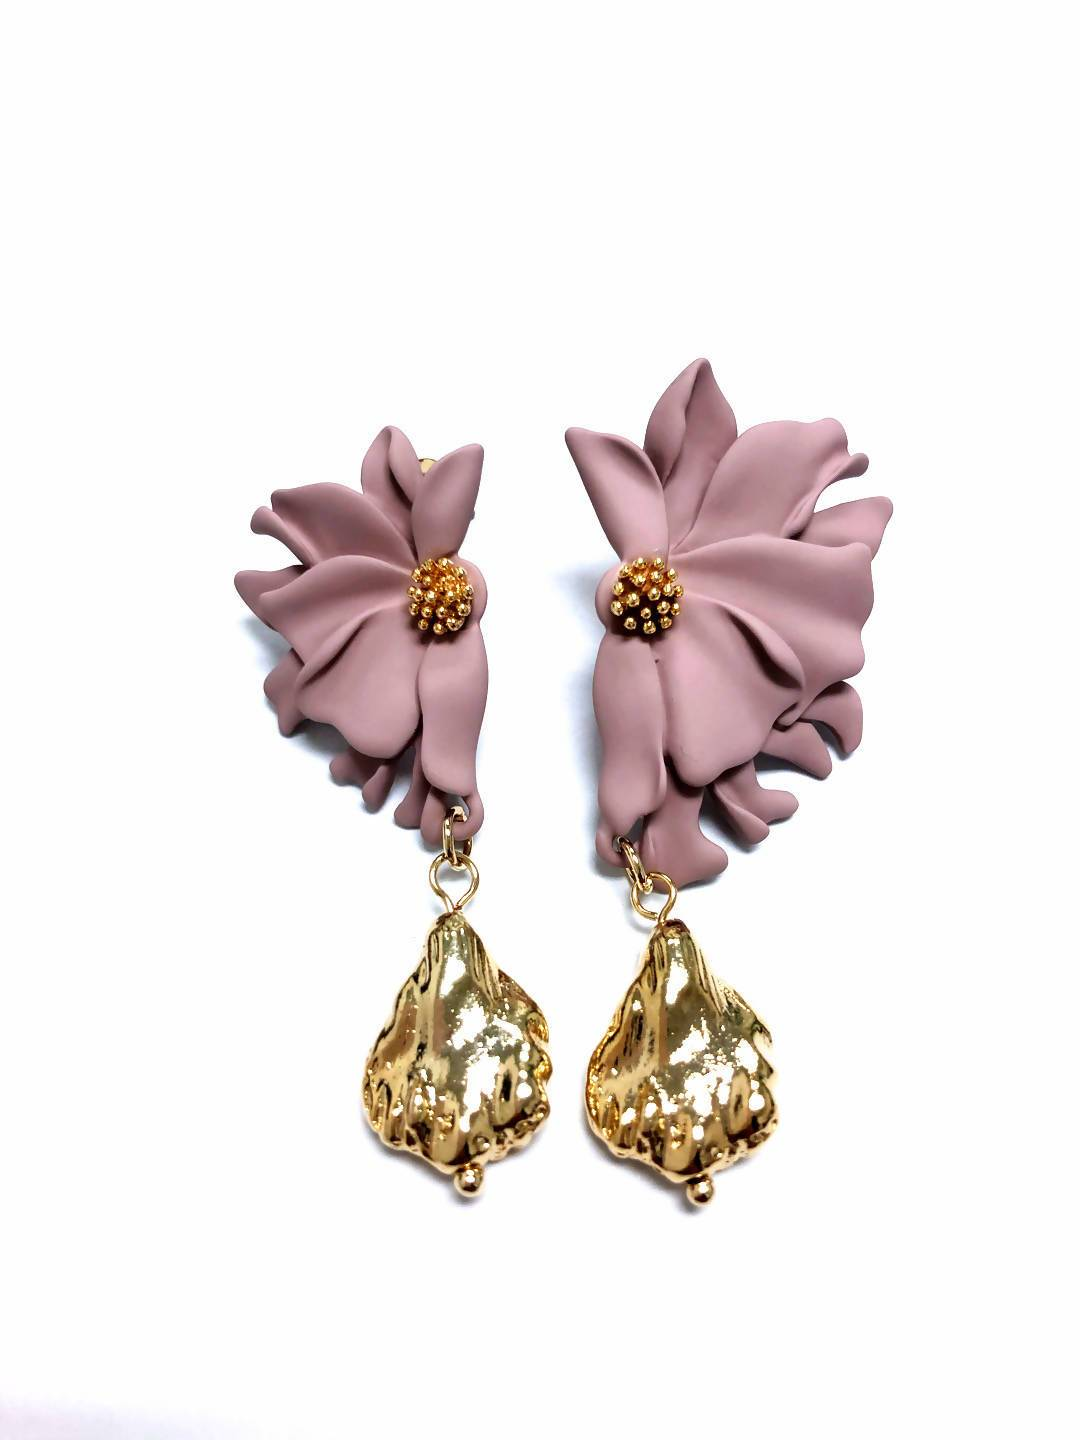 Flora Earrings - 5 Different Colors - Earrings - Forest Jewelry - Naiise